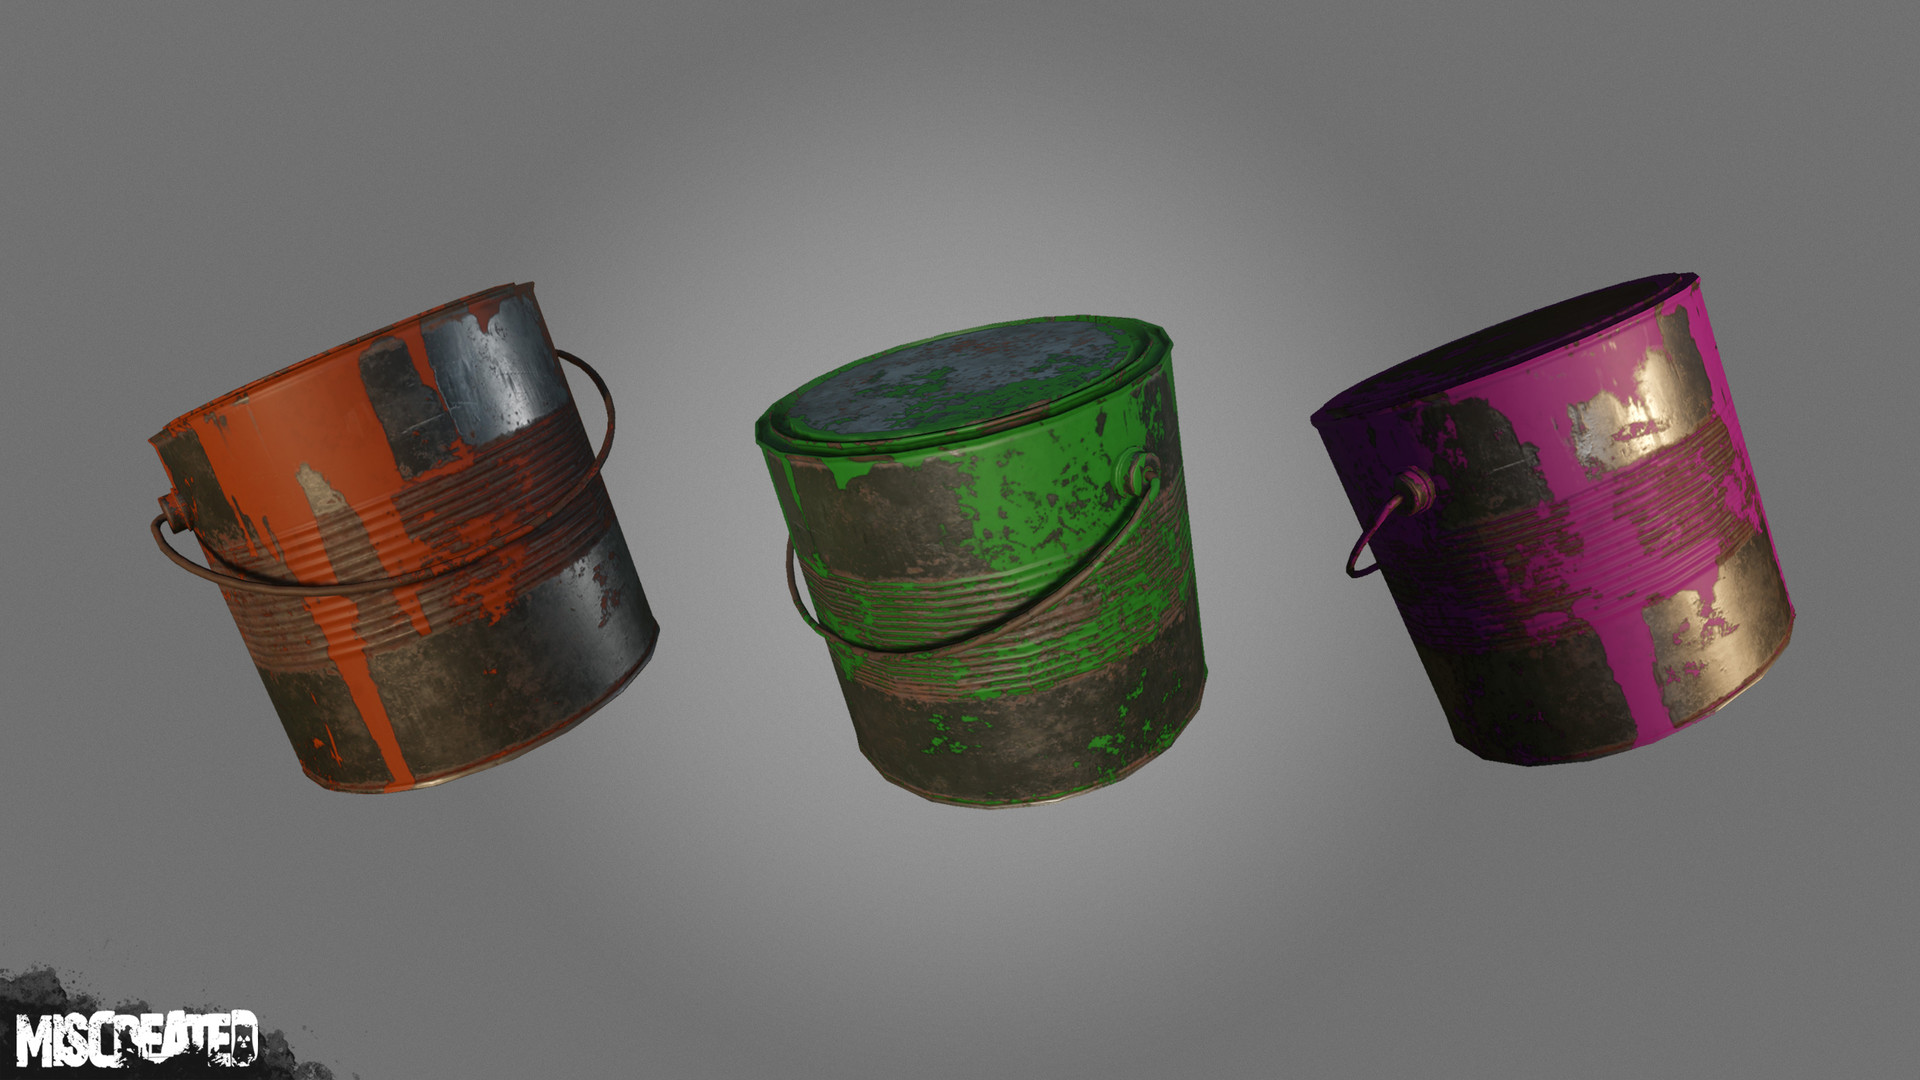 Paint Cans will be used for paint modifications in the future